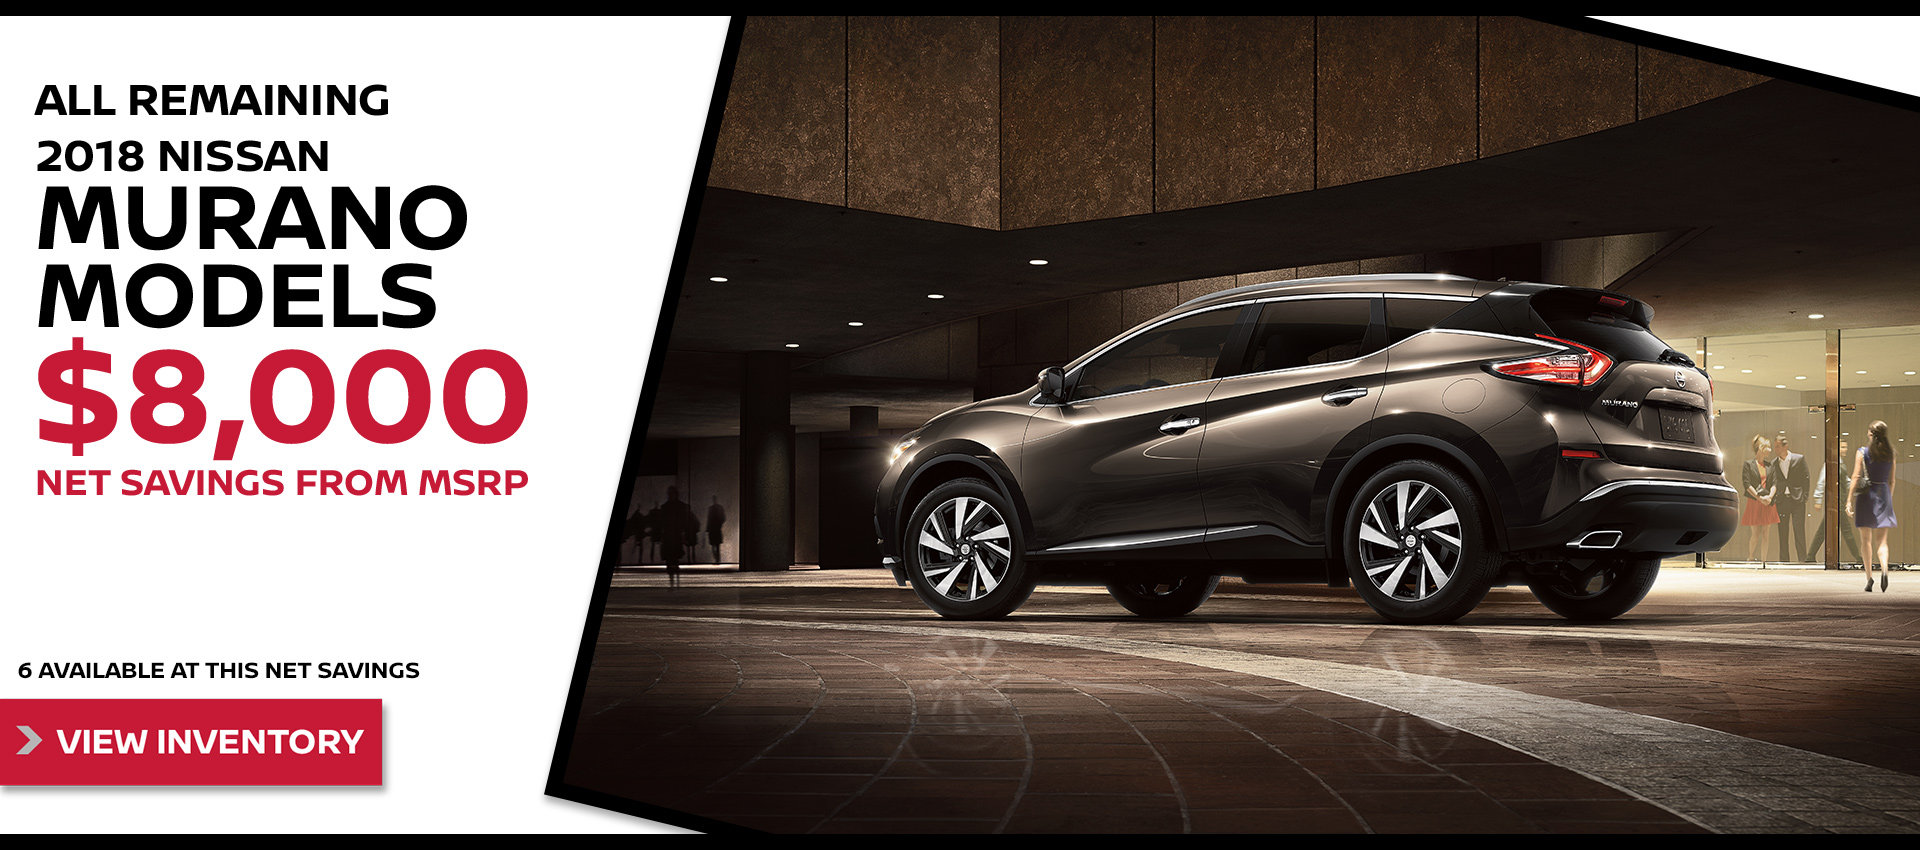 Mossy Nissan - Nissan Murano $8k OFF MSRP HP